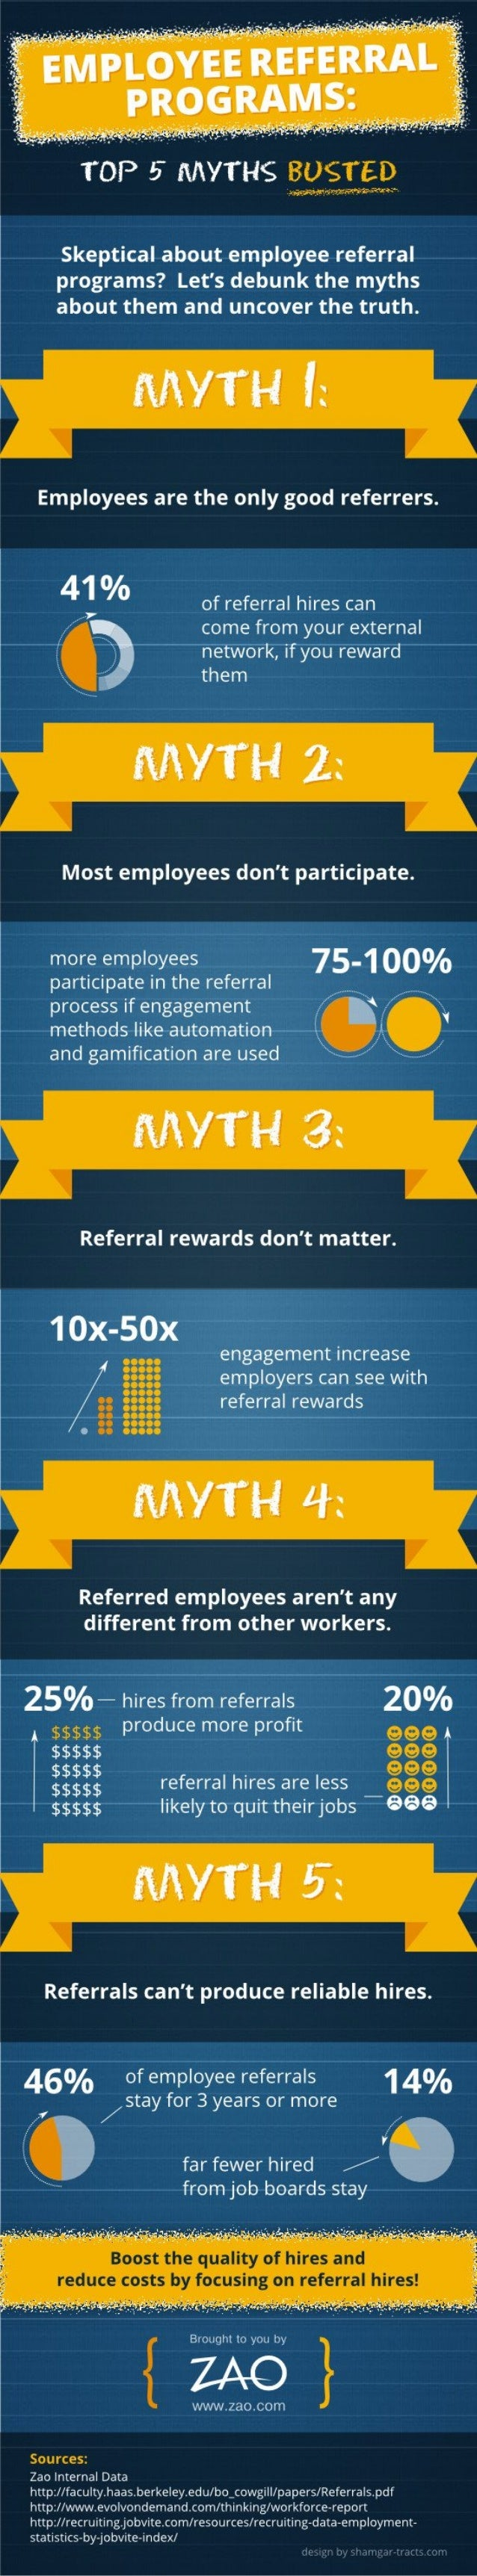 Employee Referral Programs: Top 5 Myths Busted [INFOGRAPHIC]